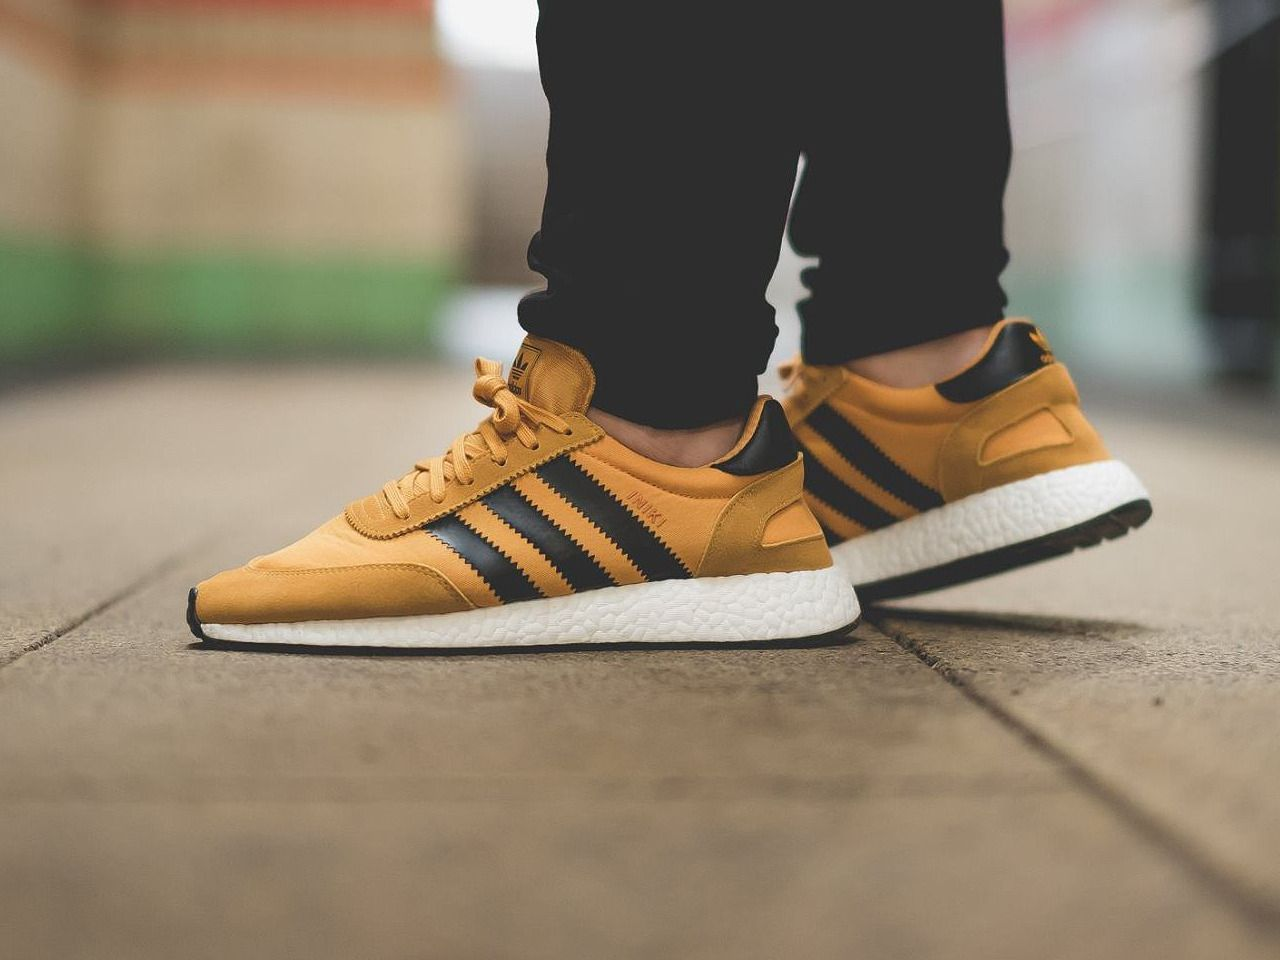 Adidas Iniki Runner Boost - Yellow Core Black - 2017 (by thomas 1986 ... 0b75532f29203